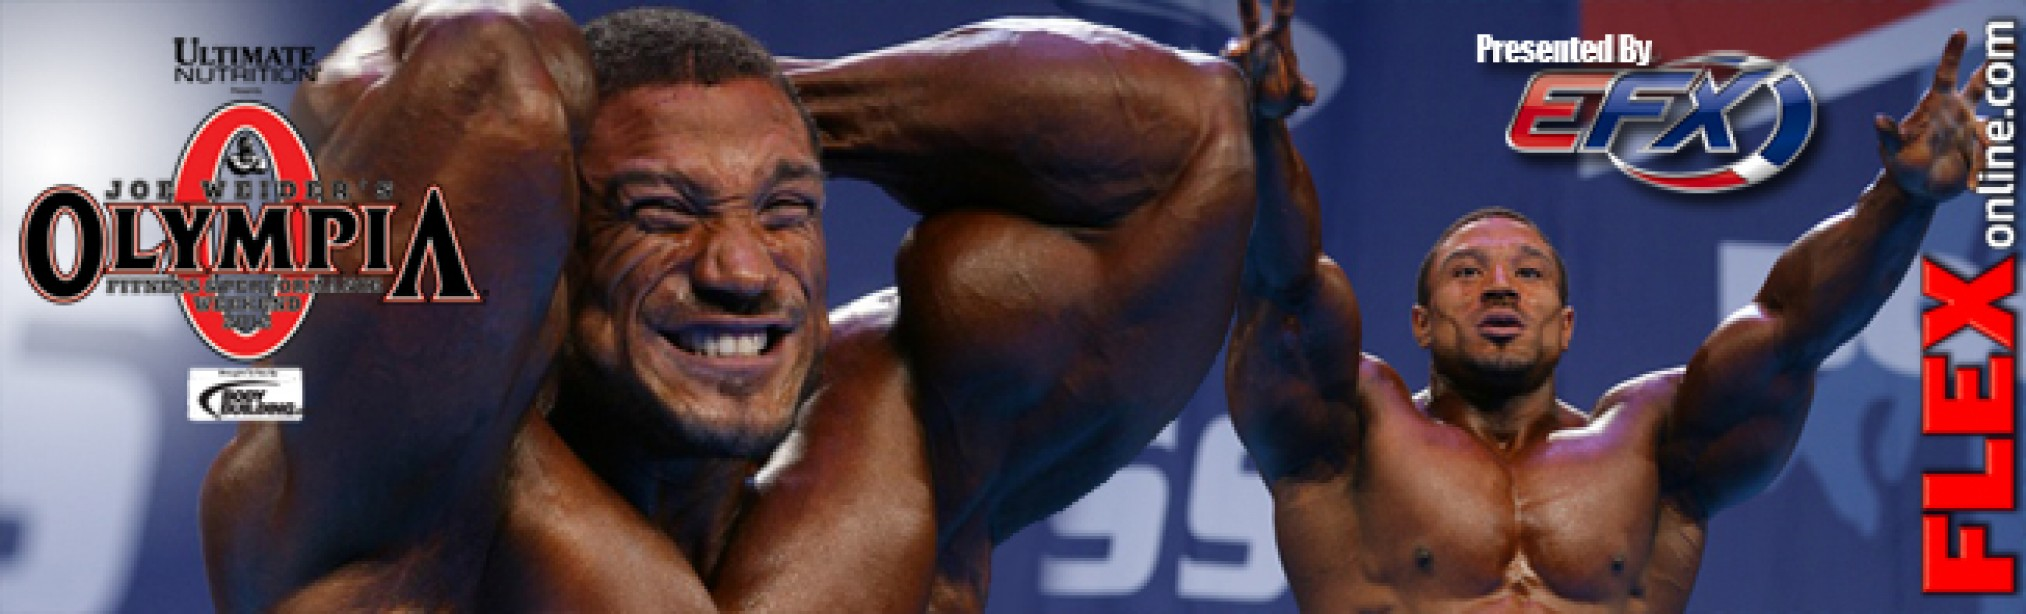 Latest from Roelly Winklaar - Home Training for Olympia